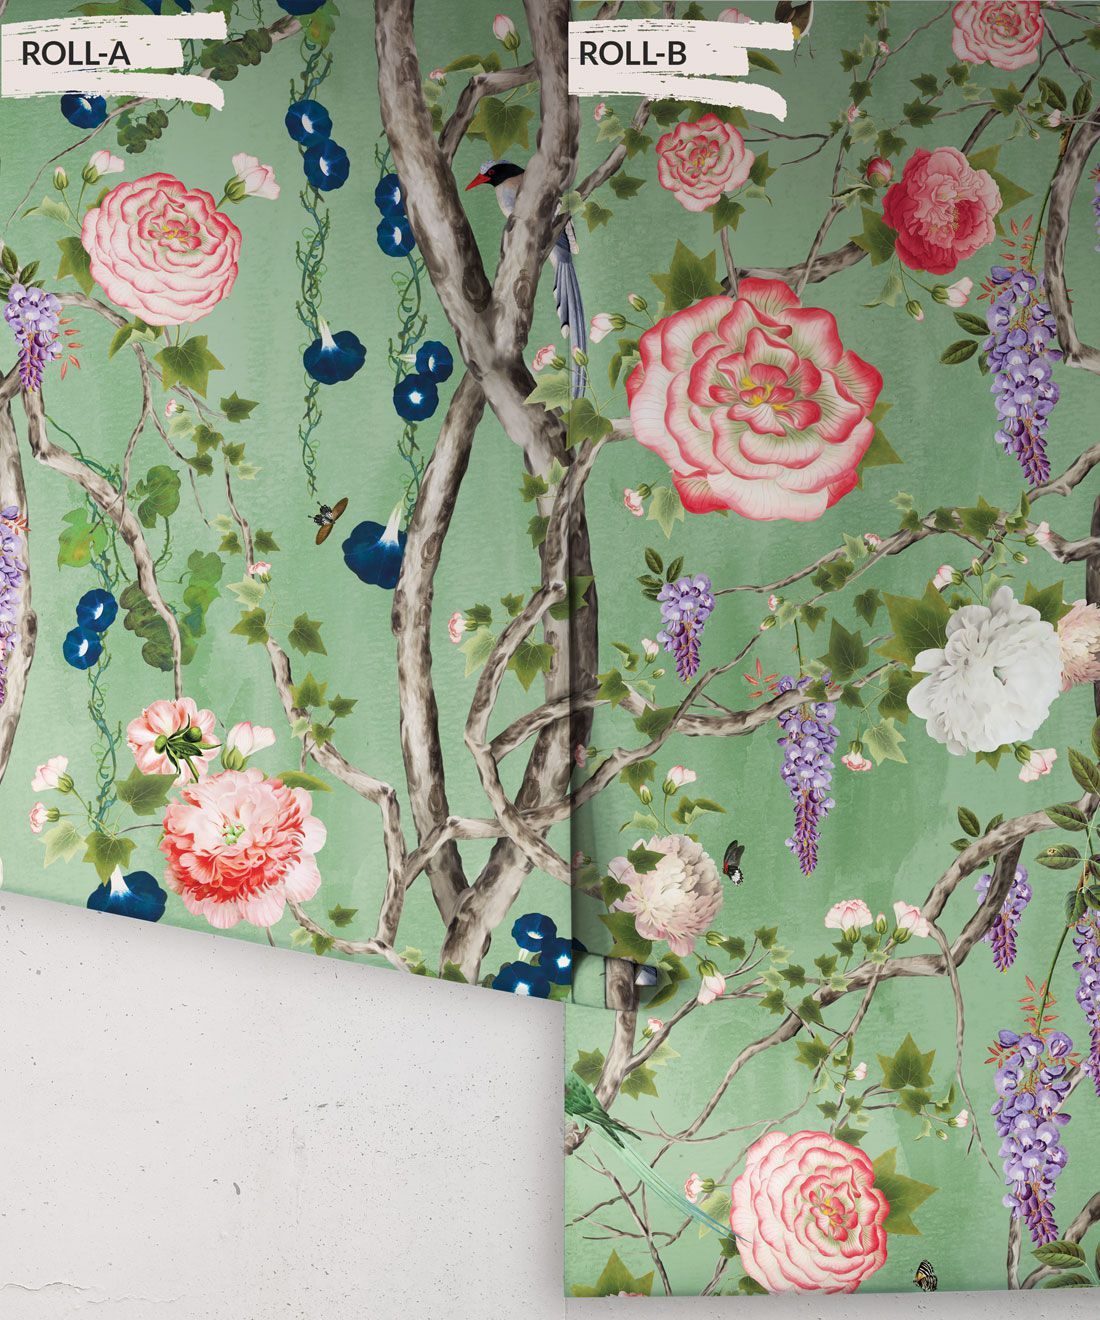 Empress Wallpaper • Romantic Wallpaper • Floral Wallpaper • Chinoiserie Wallpaper • Green color wallpaper rolls • Tea Garden